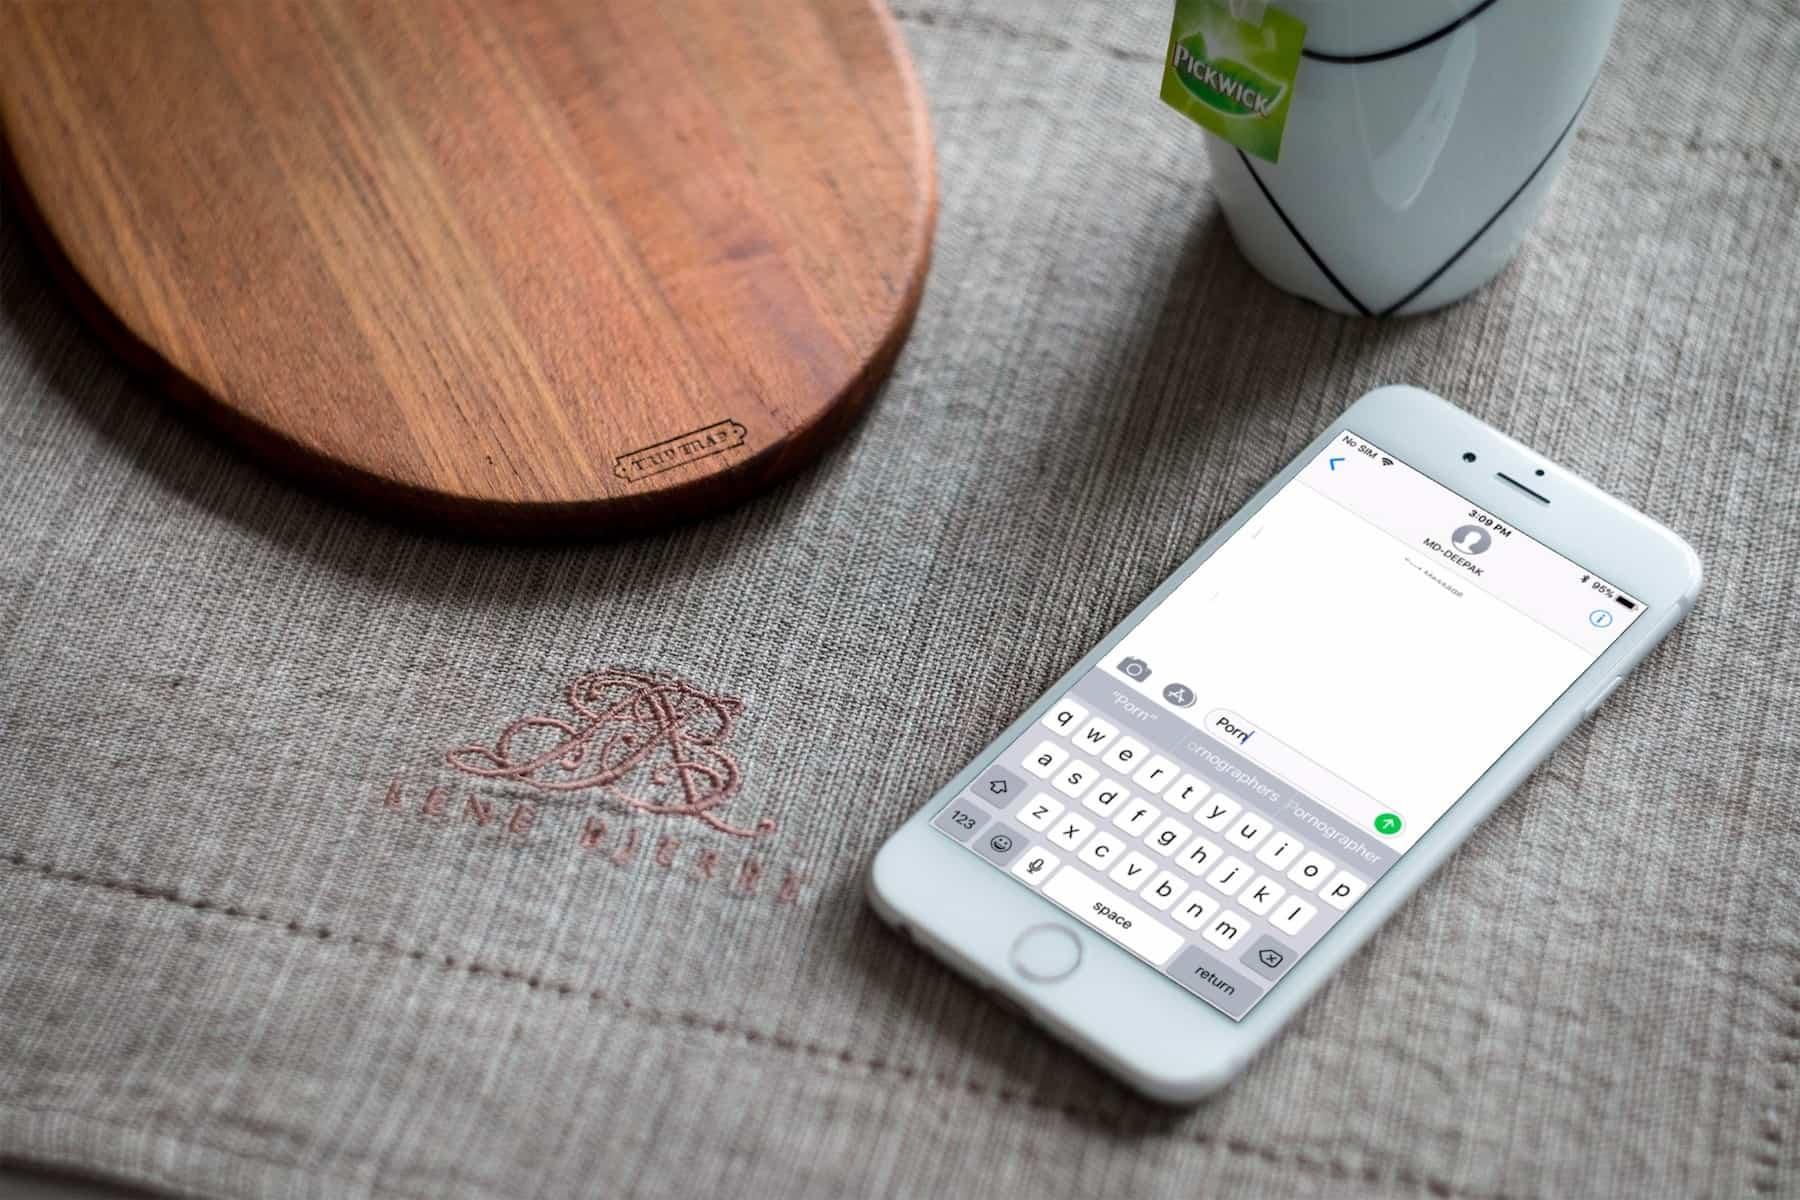 How To Remove Embarrassing Word Suggestions From The Ios Keyboard